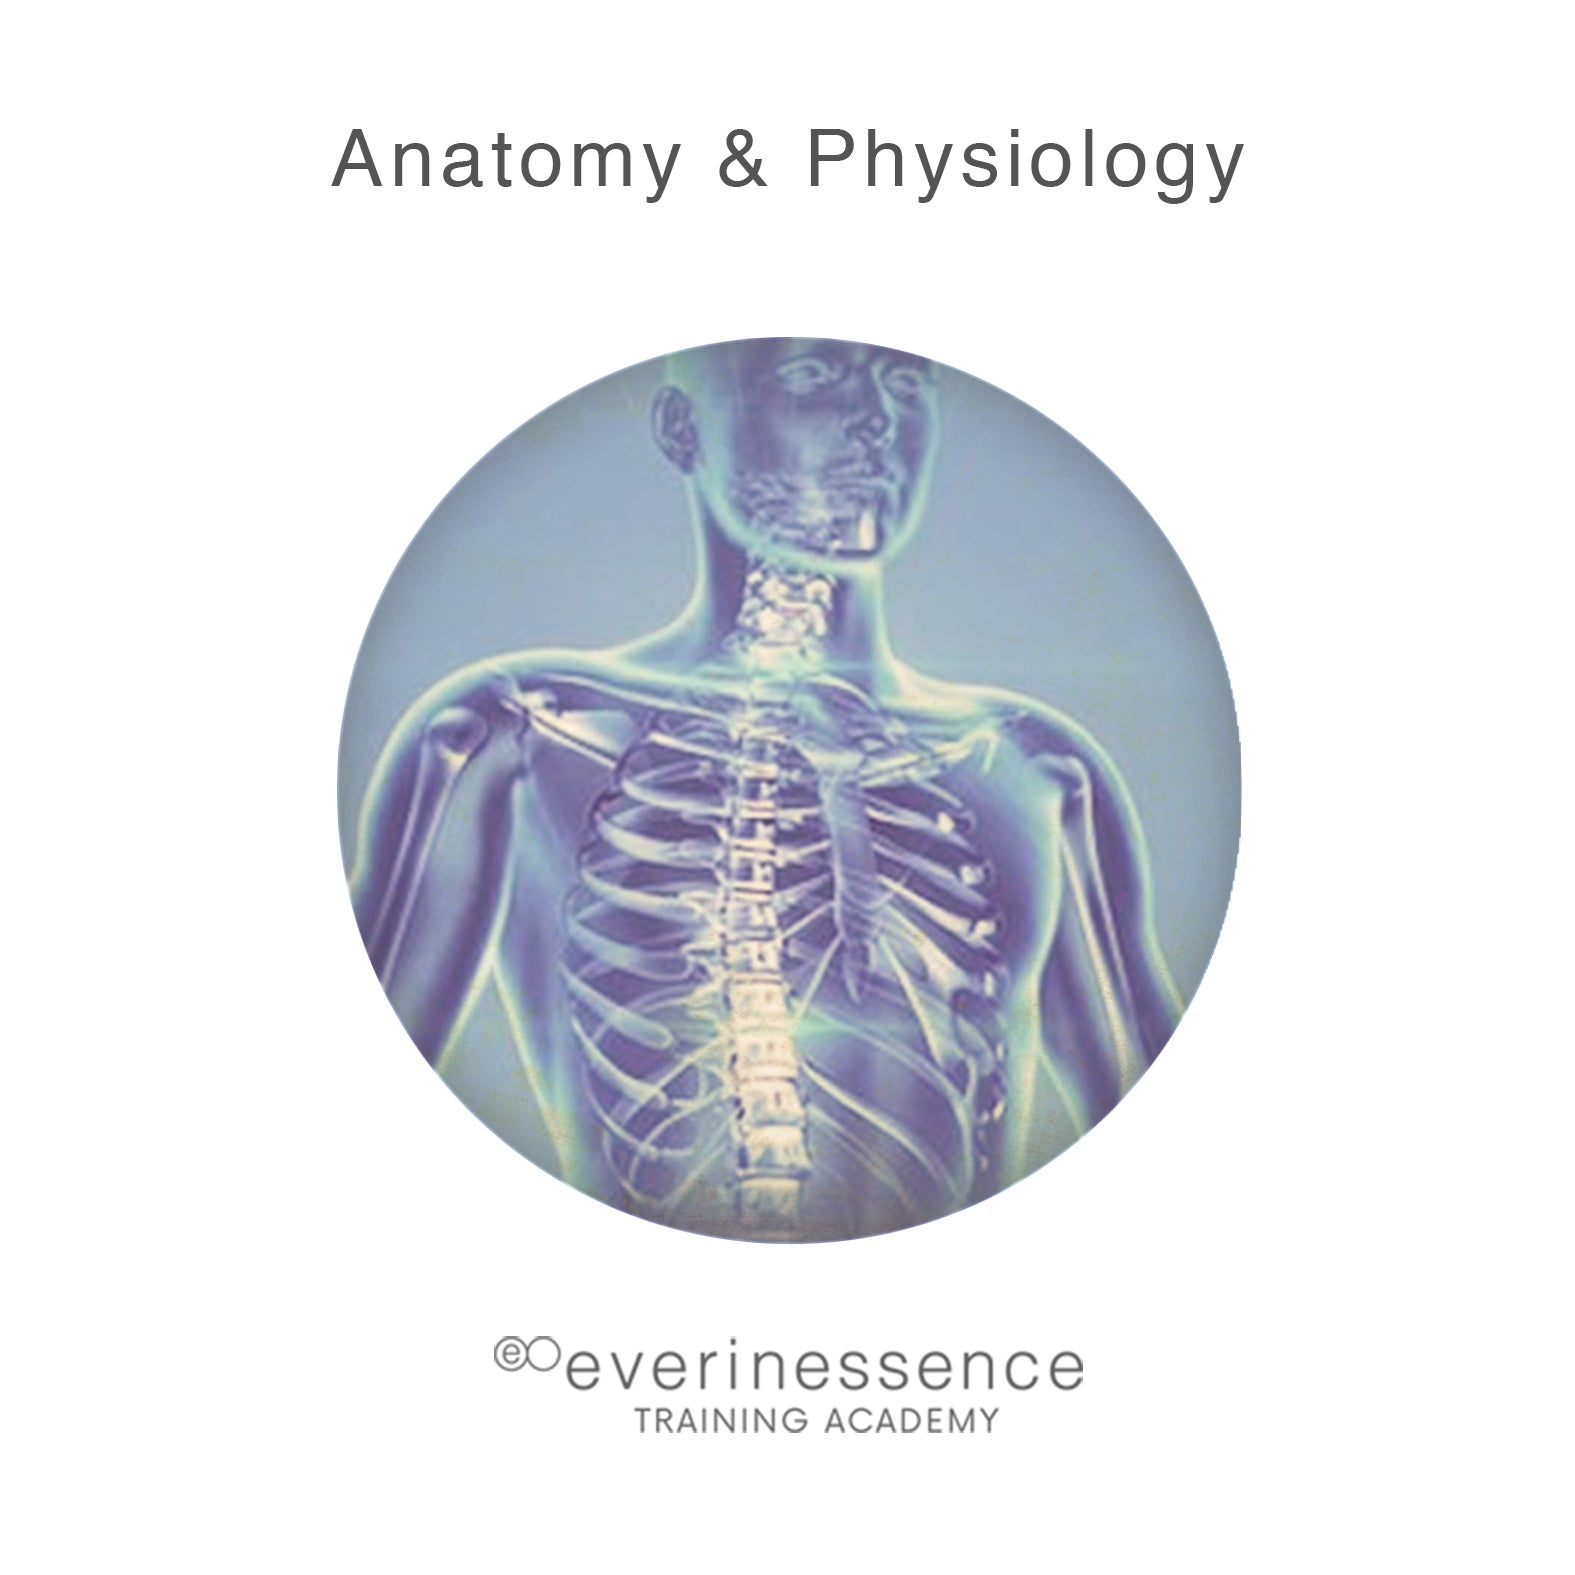 Anatomy & Physiology (Training Course) – everinessence